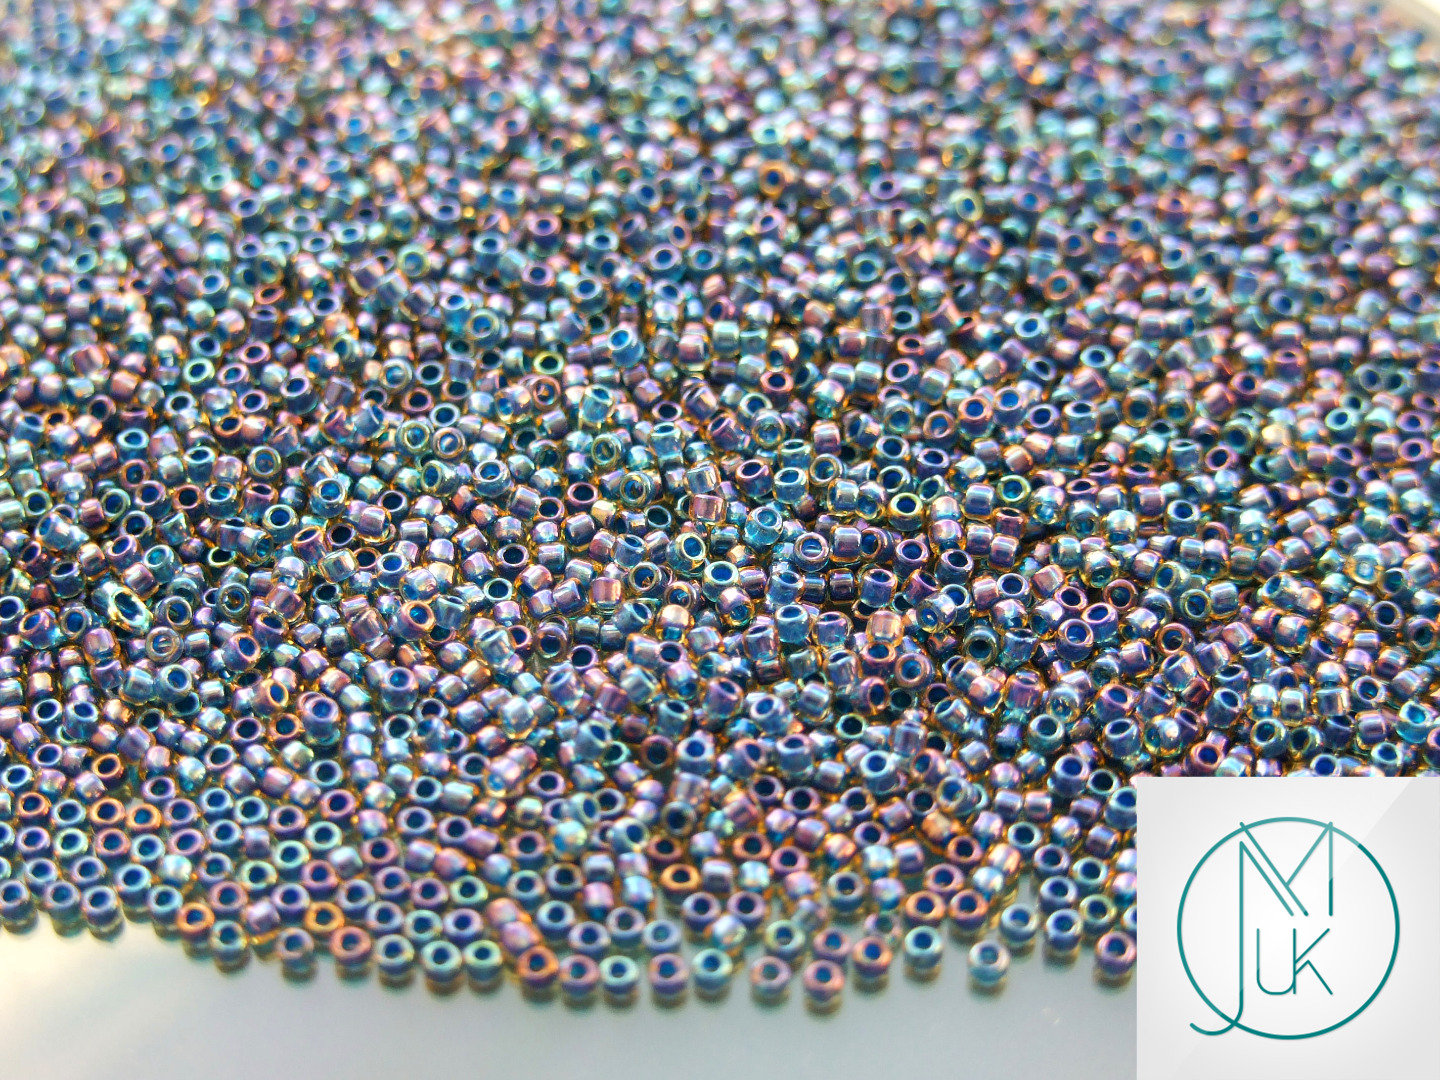 10g-Toho-Japanese-Seed-Beads-Size-15-0-1-5mm-185-Colors-To-Choose thumbnail 126